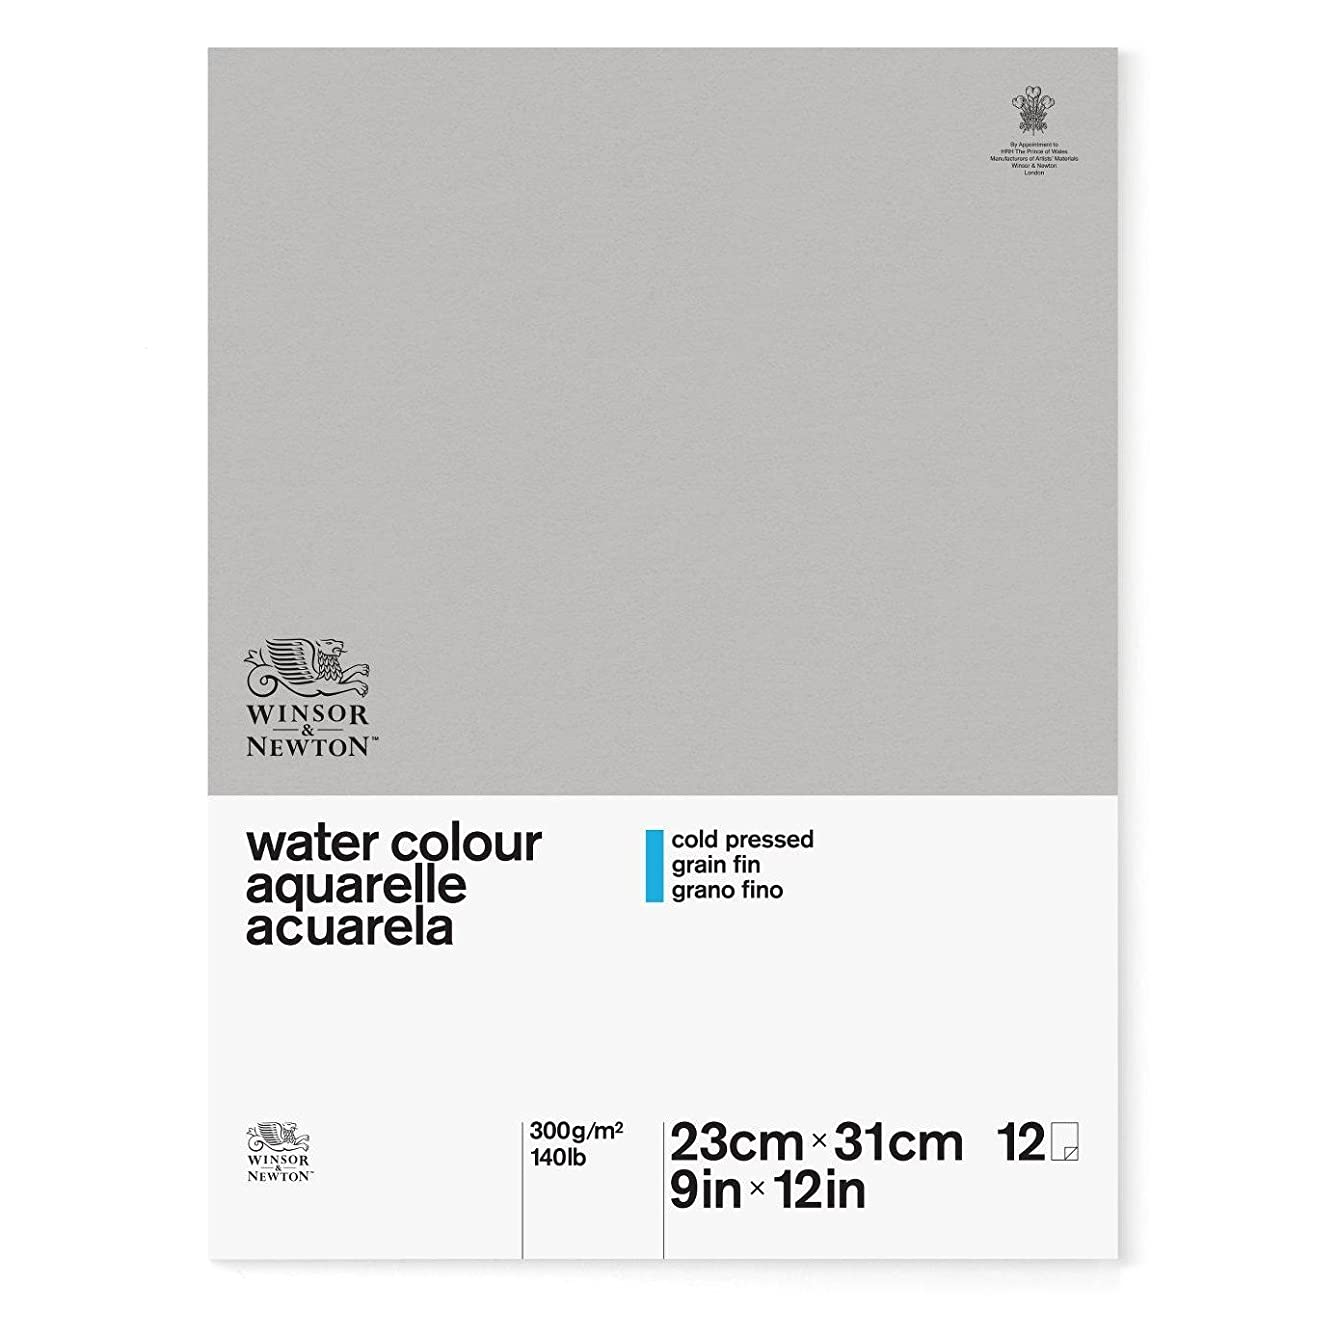 Winsor & Newton Classic Watercolor Paper Side Glued Pad, Cold Pressed 140lb, 9